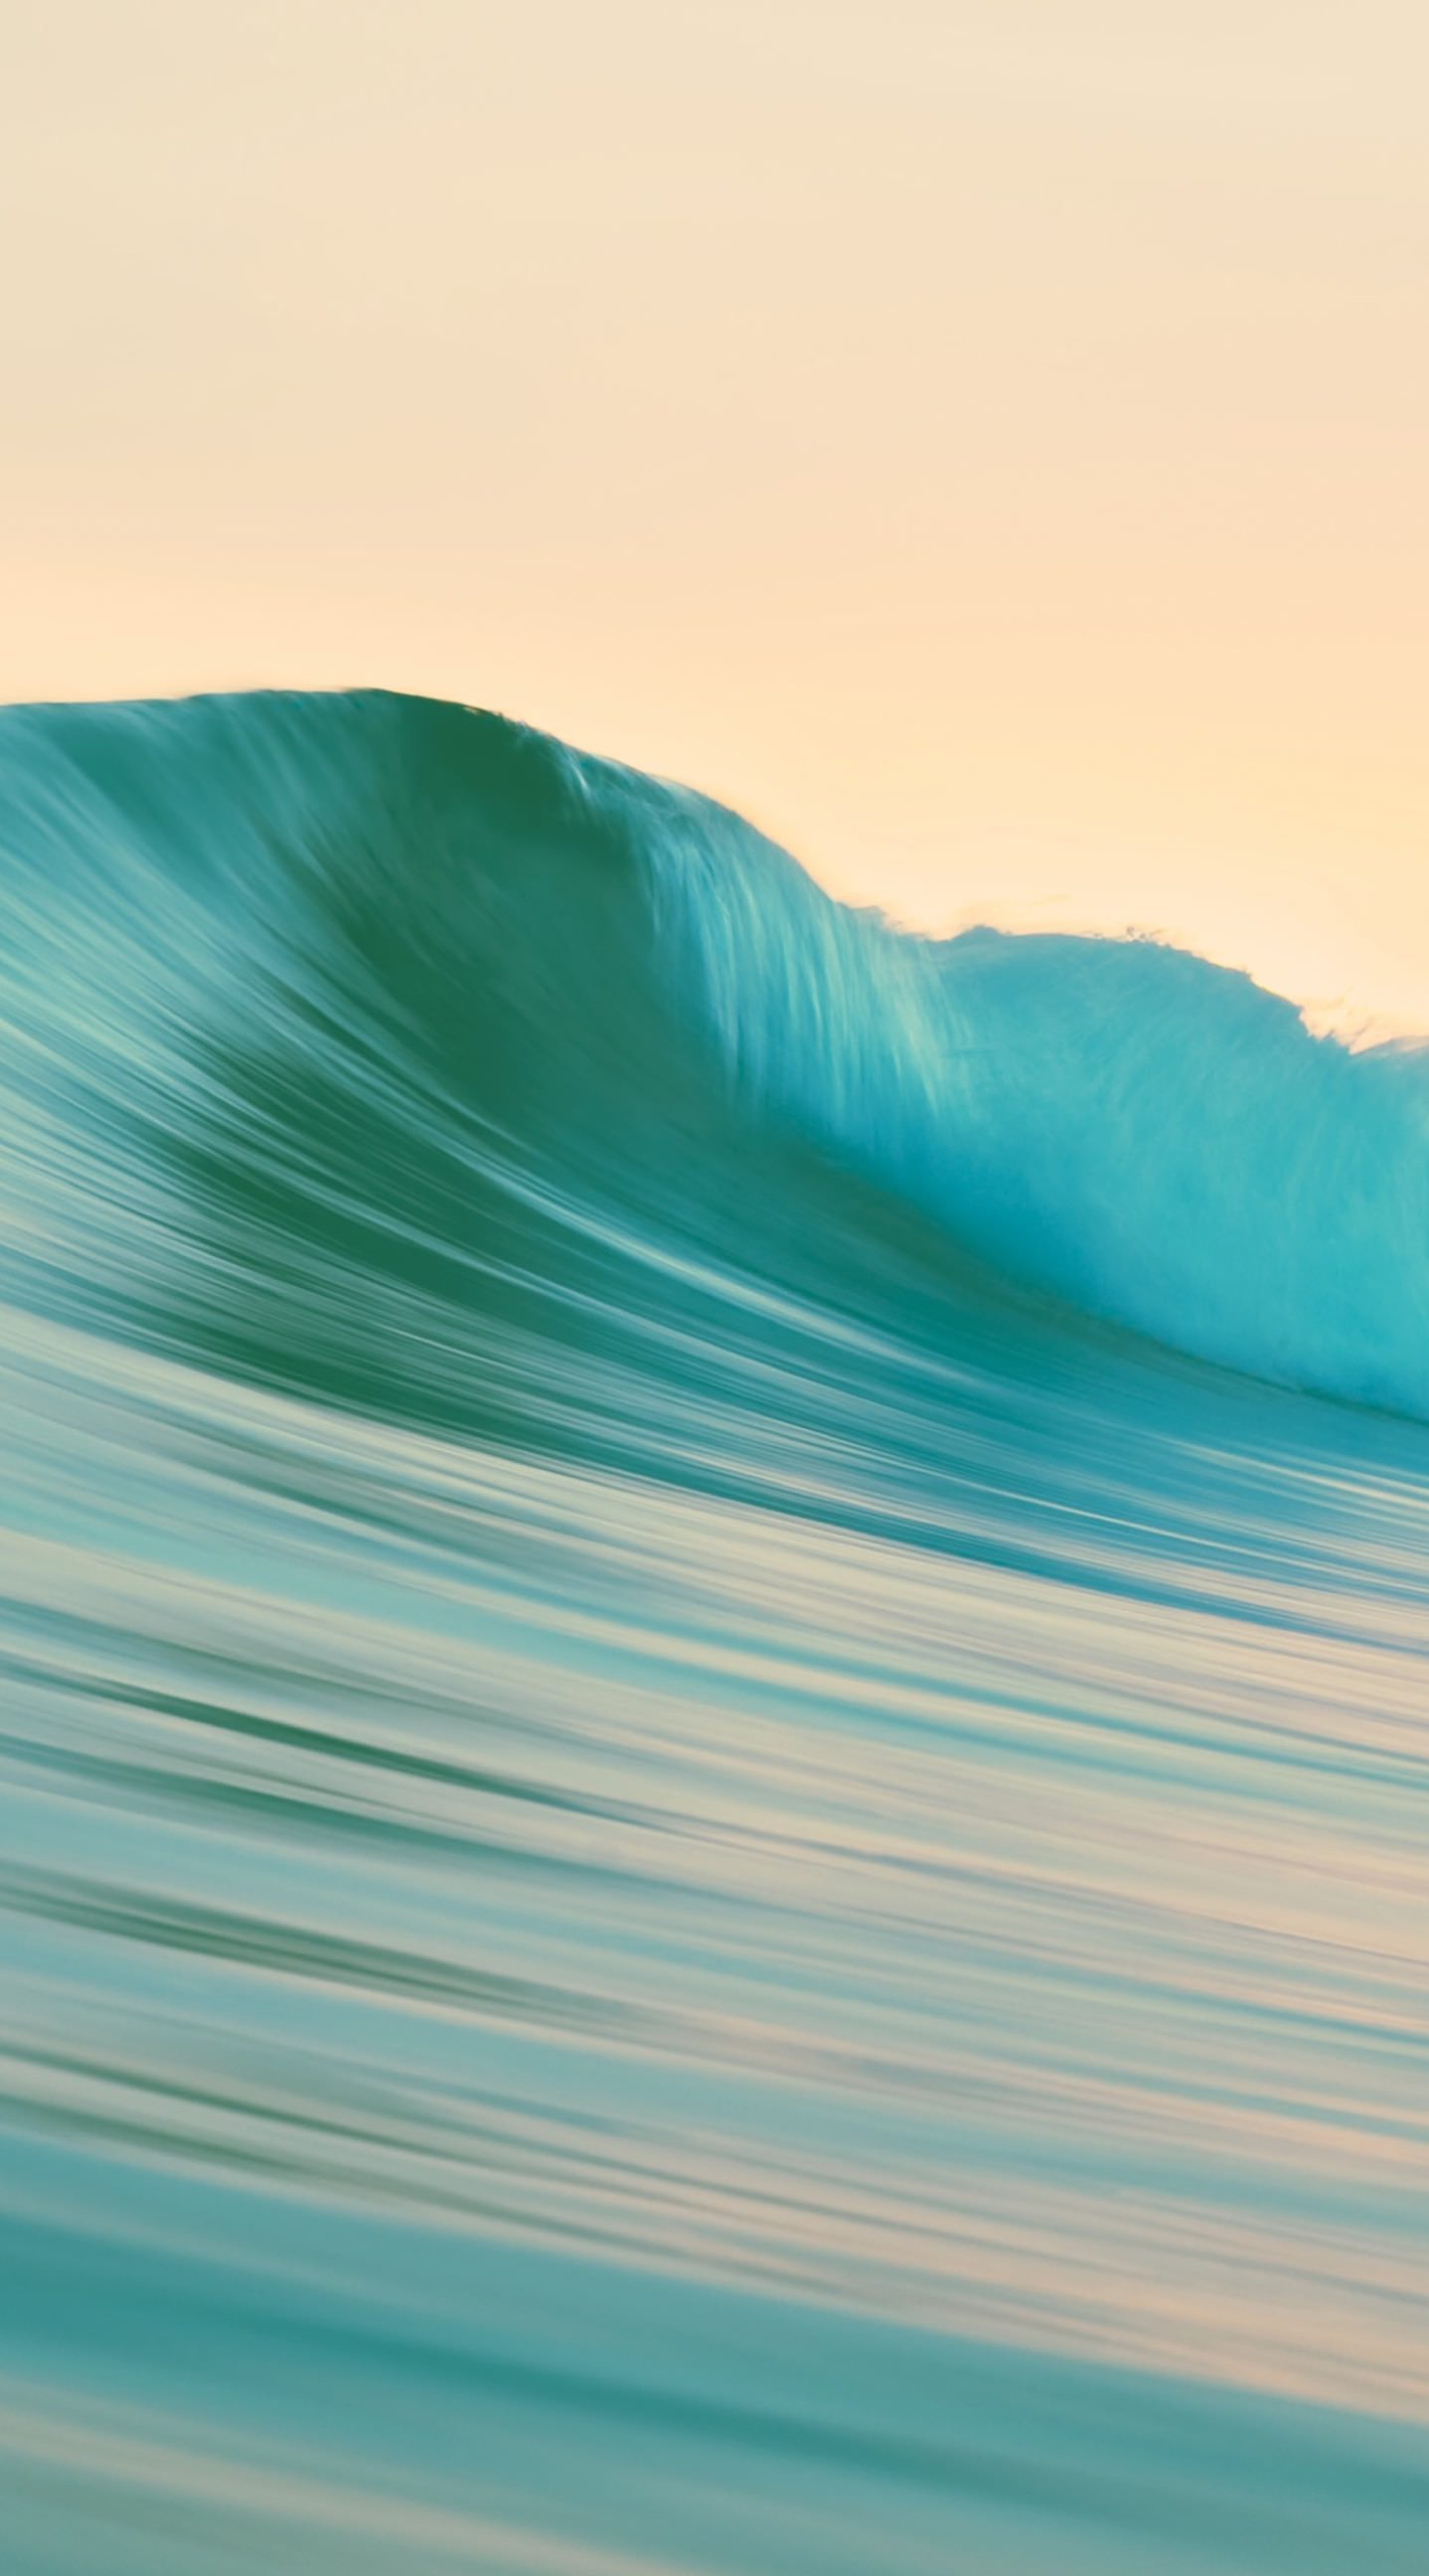 Wallpaper iphone wave - Iphone 6s Plus Iphone 6 Plus Wallpaper